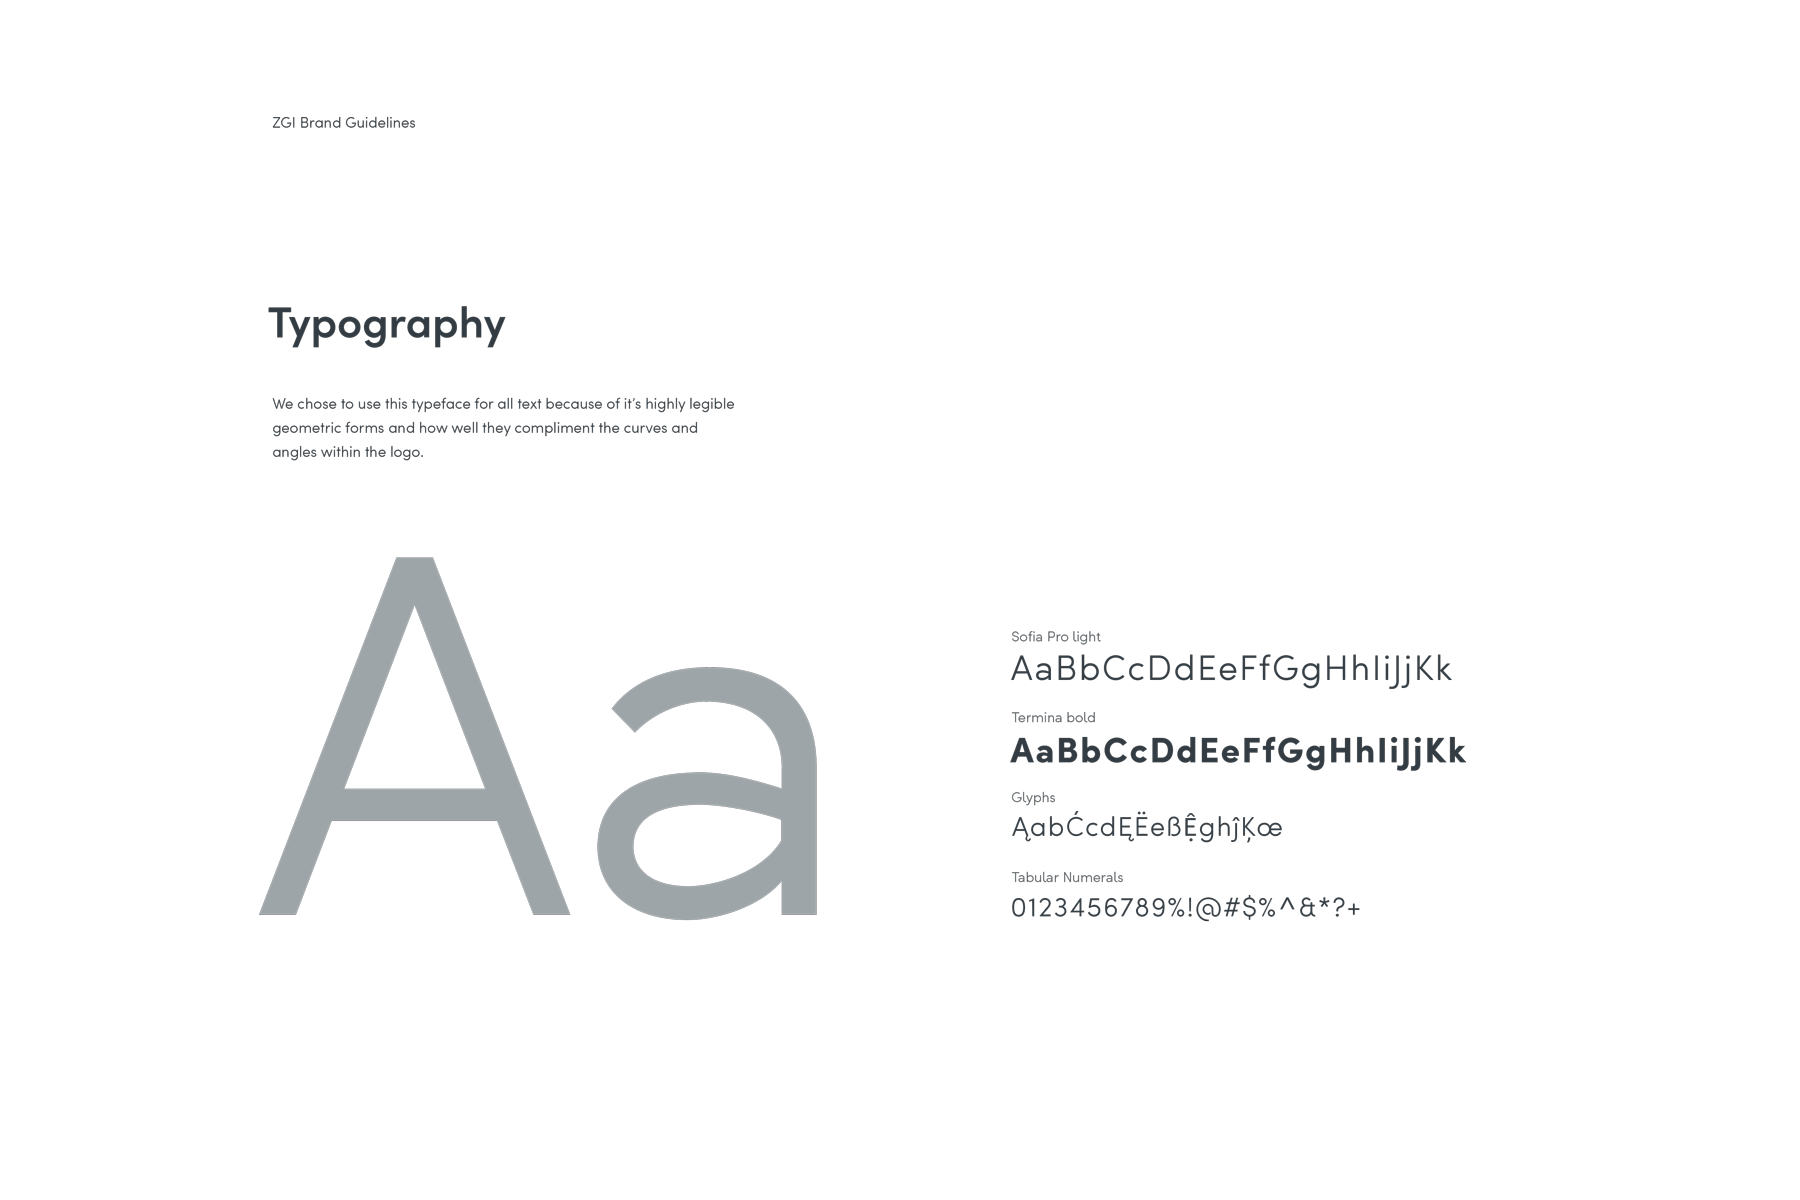 ZGI-Brand-guidelines-fonts.png